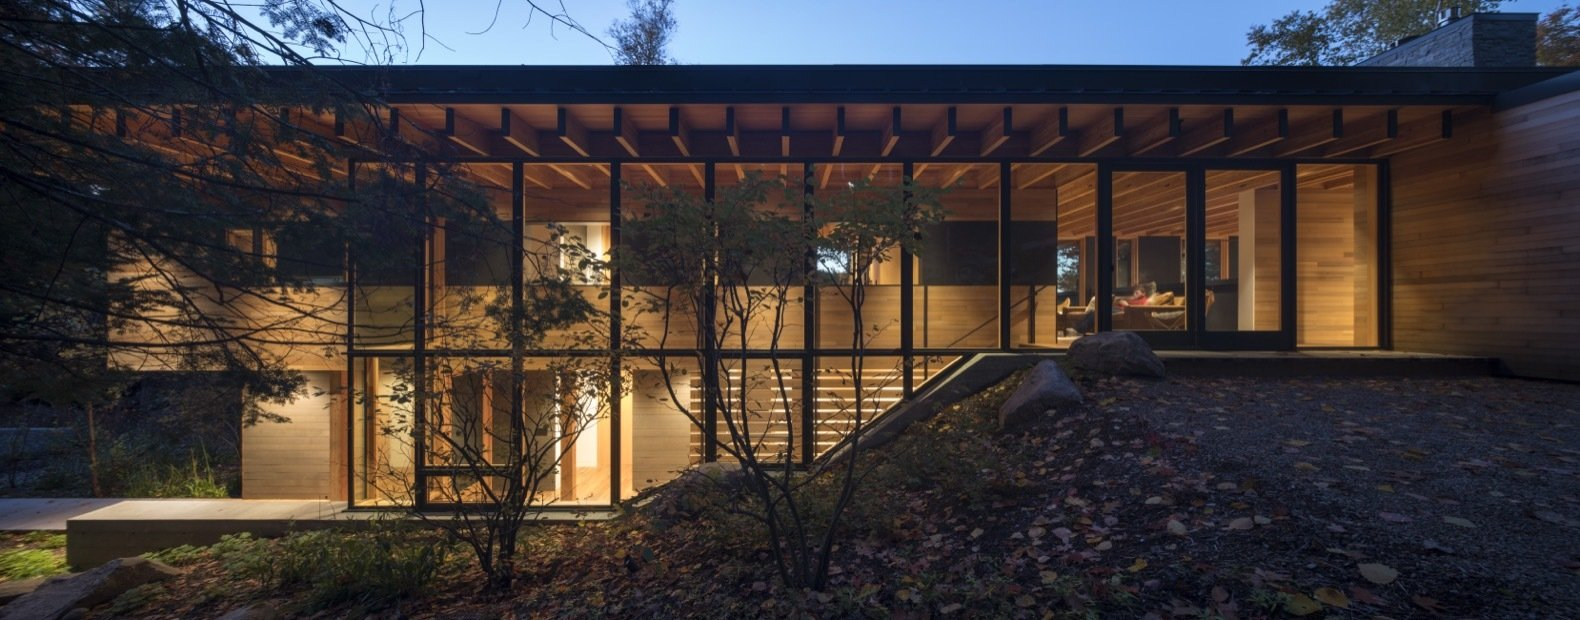 Exterior, House Building Type, Metal Roof Material, Concrete Siding Material, Wood Siding Material, Glass Siding Material, Flat RoofLine, and Cabin Building Type A glazed staircase placed on the south side of the building next to the hillside leads to the bedrooms on the upper level.    Photo 4 of 16 in This Award-Winning Cabin Is a Relaxing Antidote to City Living